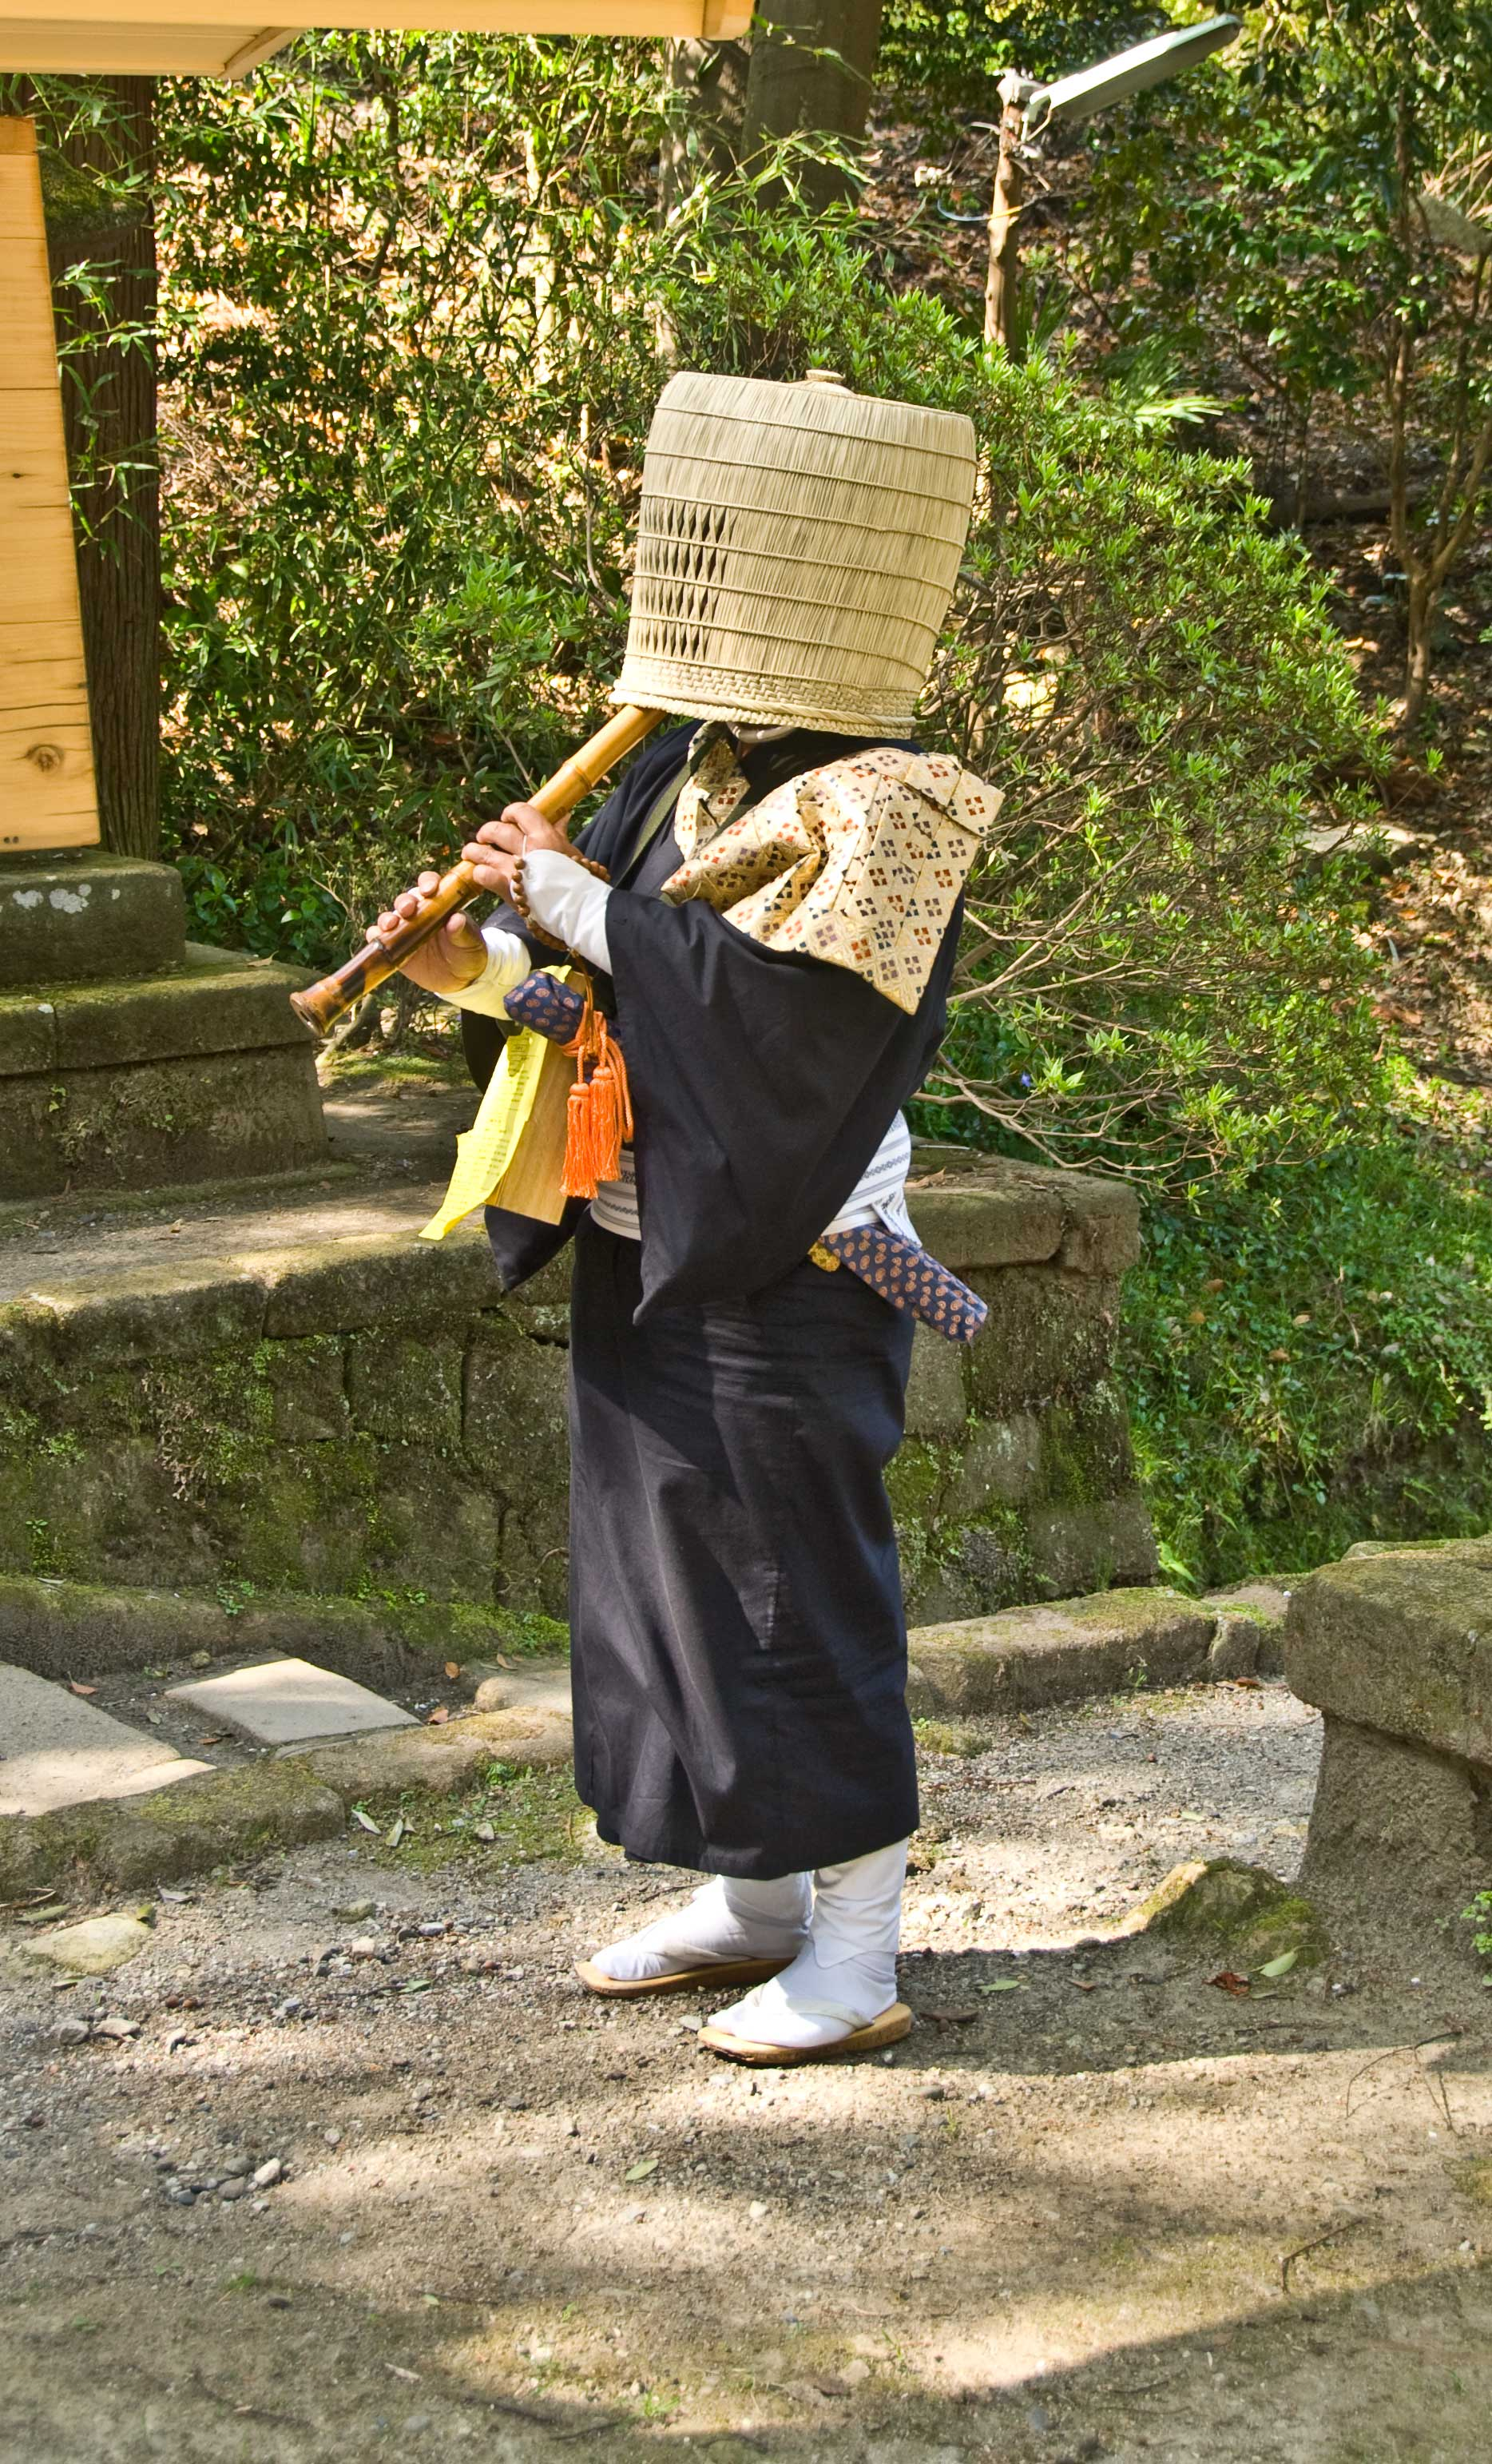 https://upload.wikimedia.org/wikipedia/commons/0/06/Komuso_Buddhist_monk_beggar_Kita-kamakura.jpg